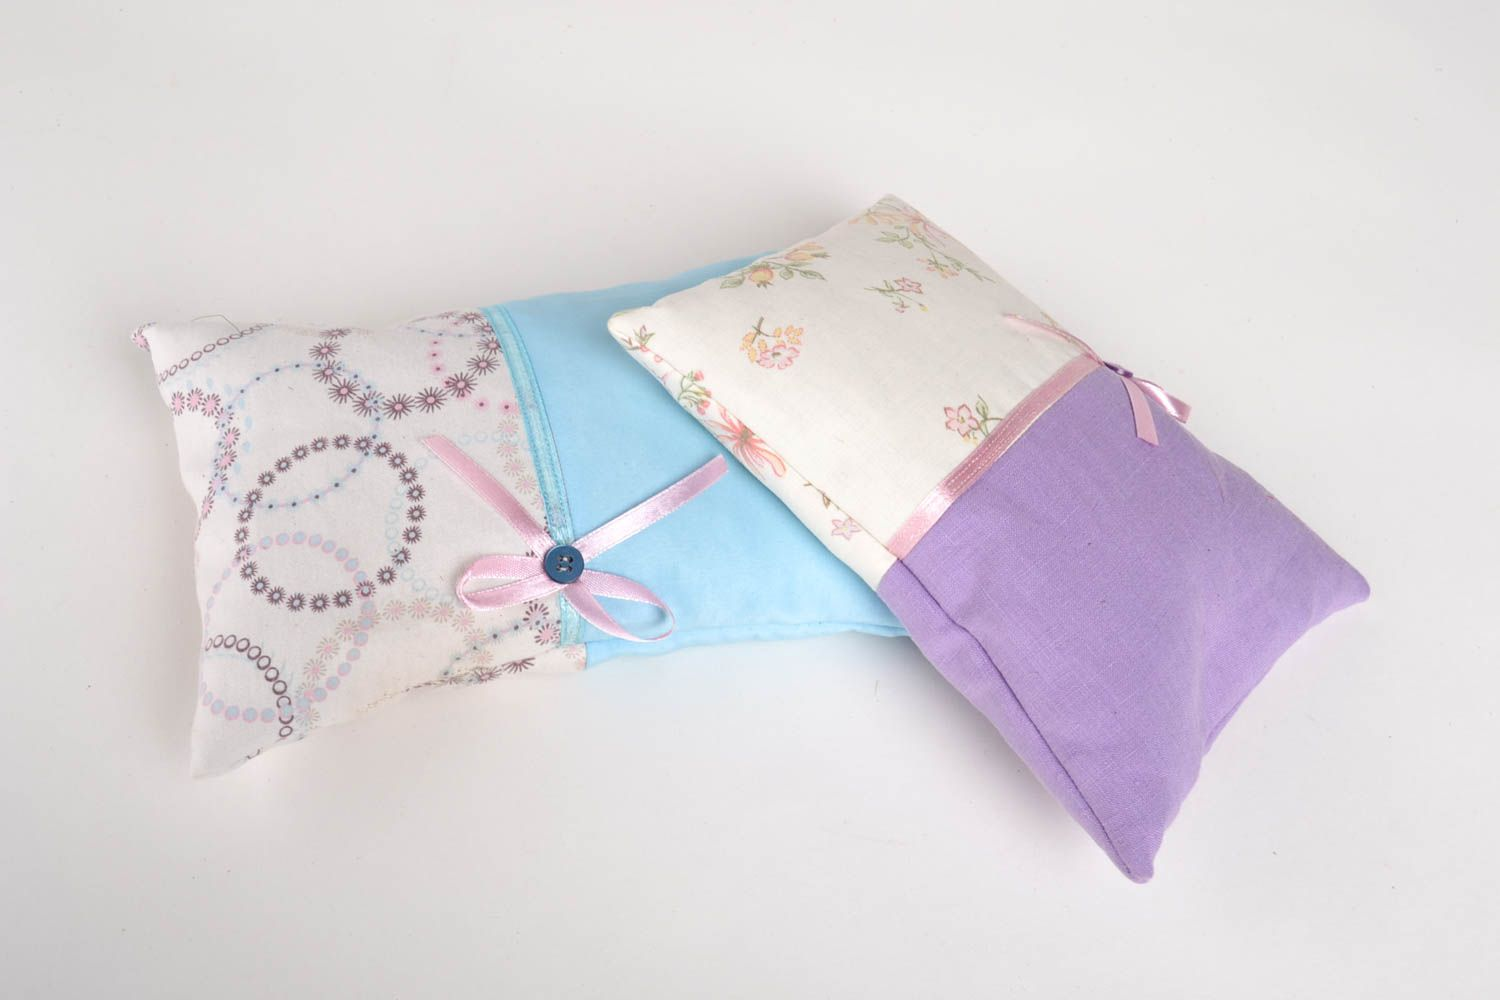 Homemade home decor 2 sachet pillows scented sachets homemade gifts for friends photo 4